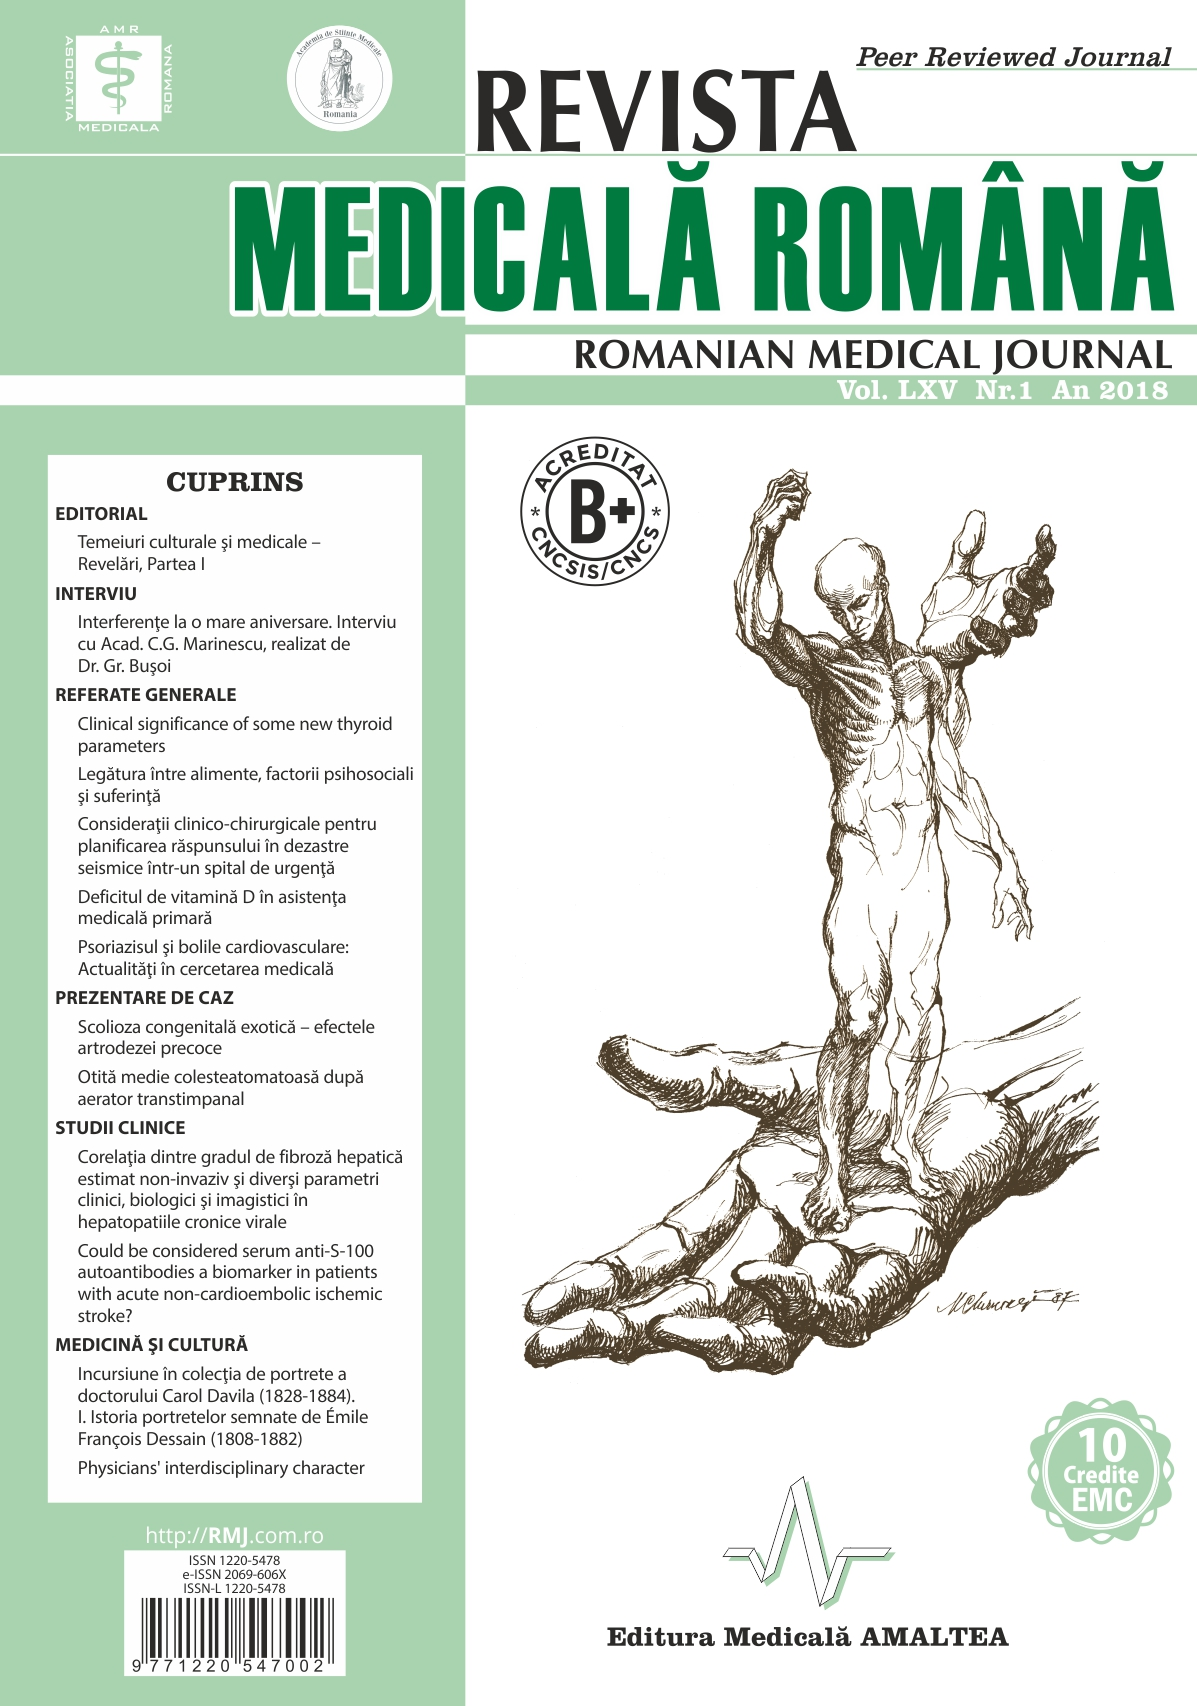 REVISTA MEDICALA ROMANA - Romanian Medical Journal, Vol. LXV, No. 1, Year 2018